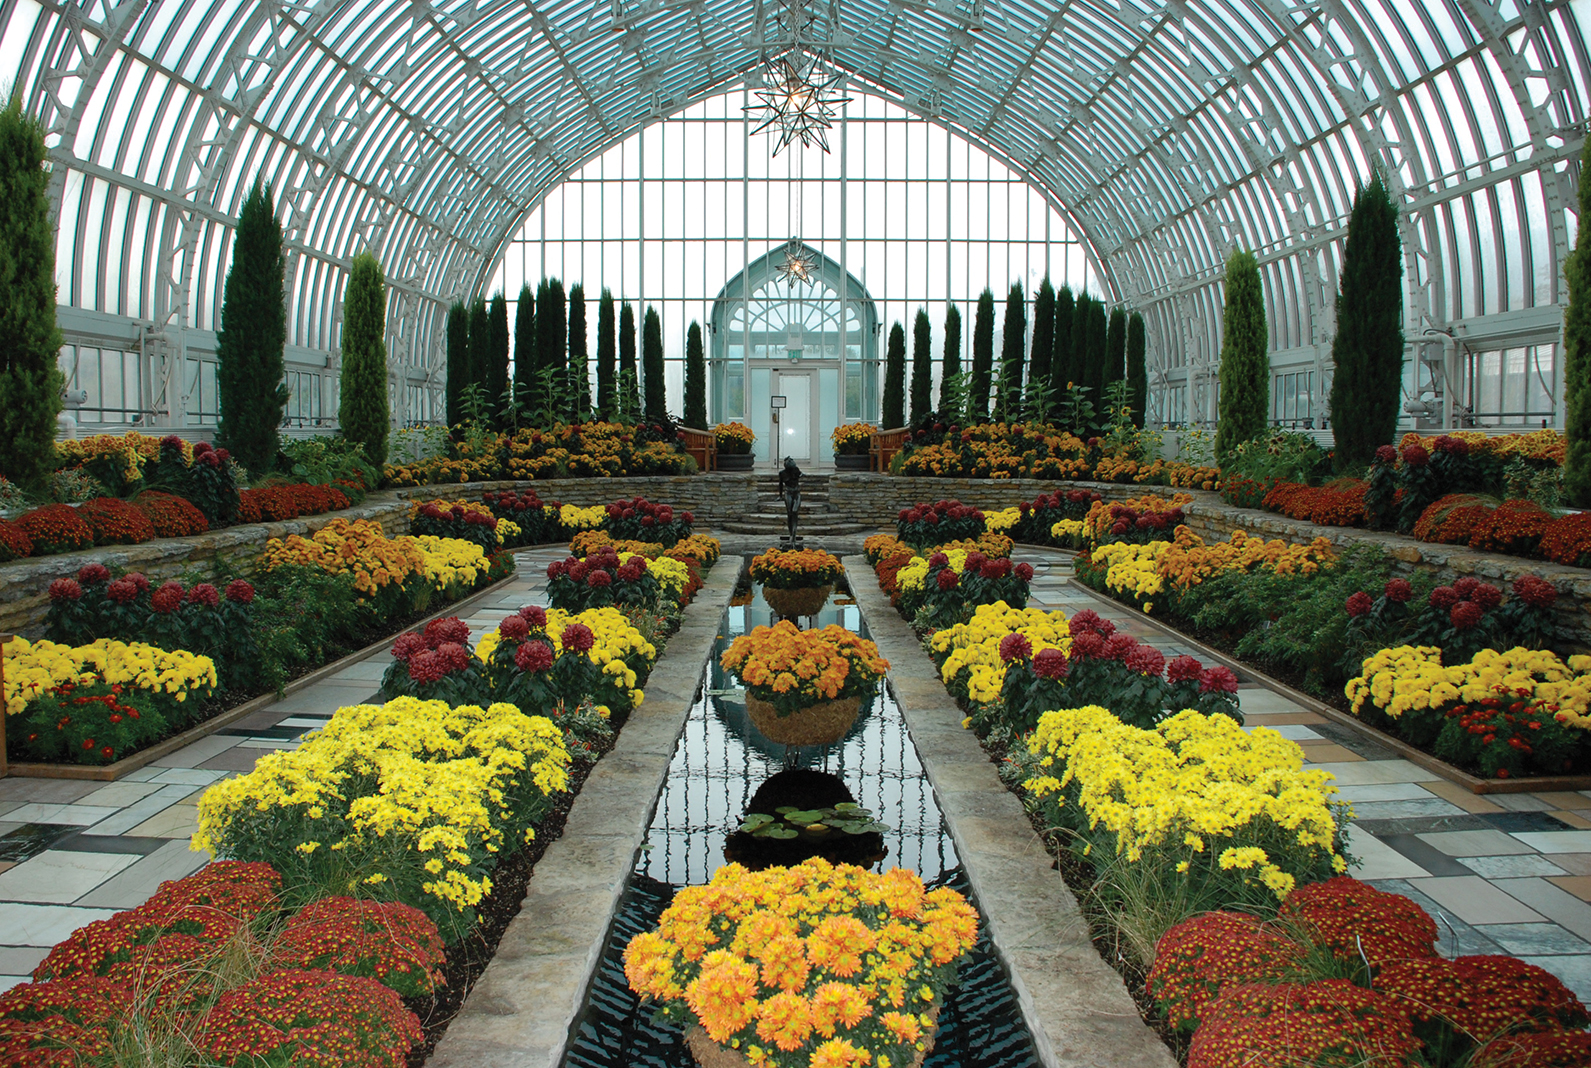 Chrysanthemums fill the Marjorie McNeely Conservatory in St. Paul for fall